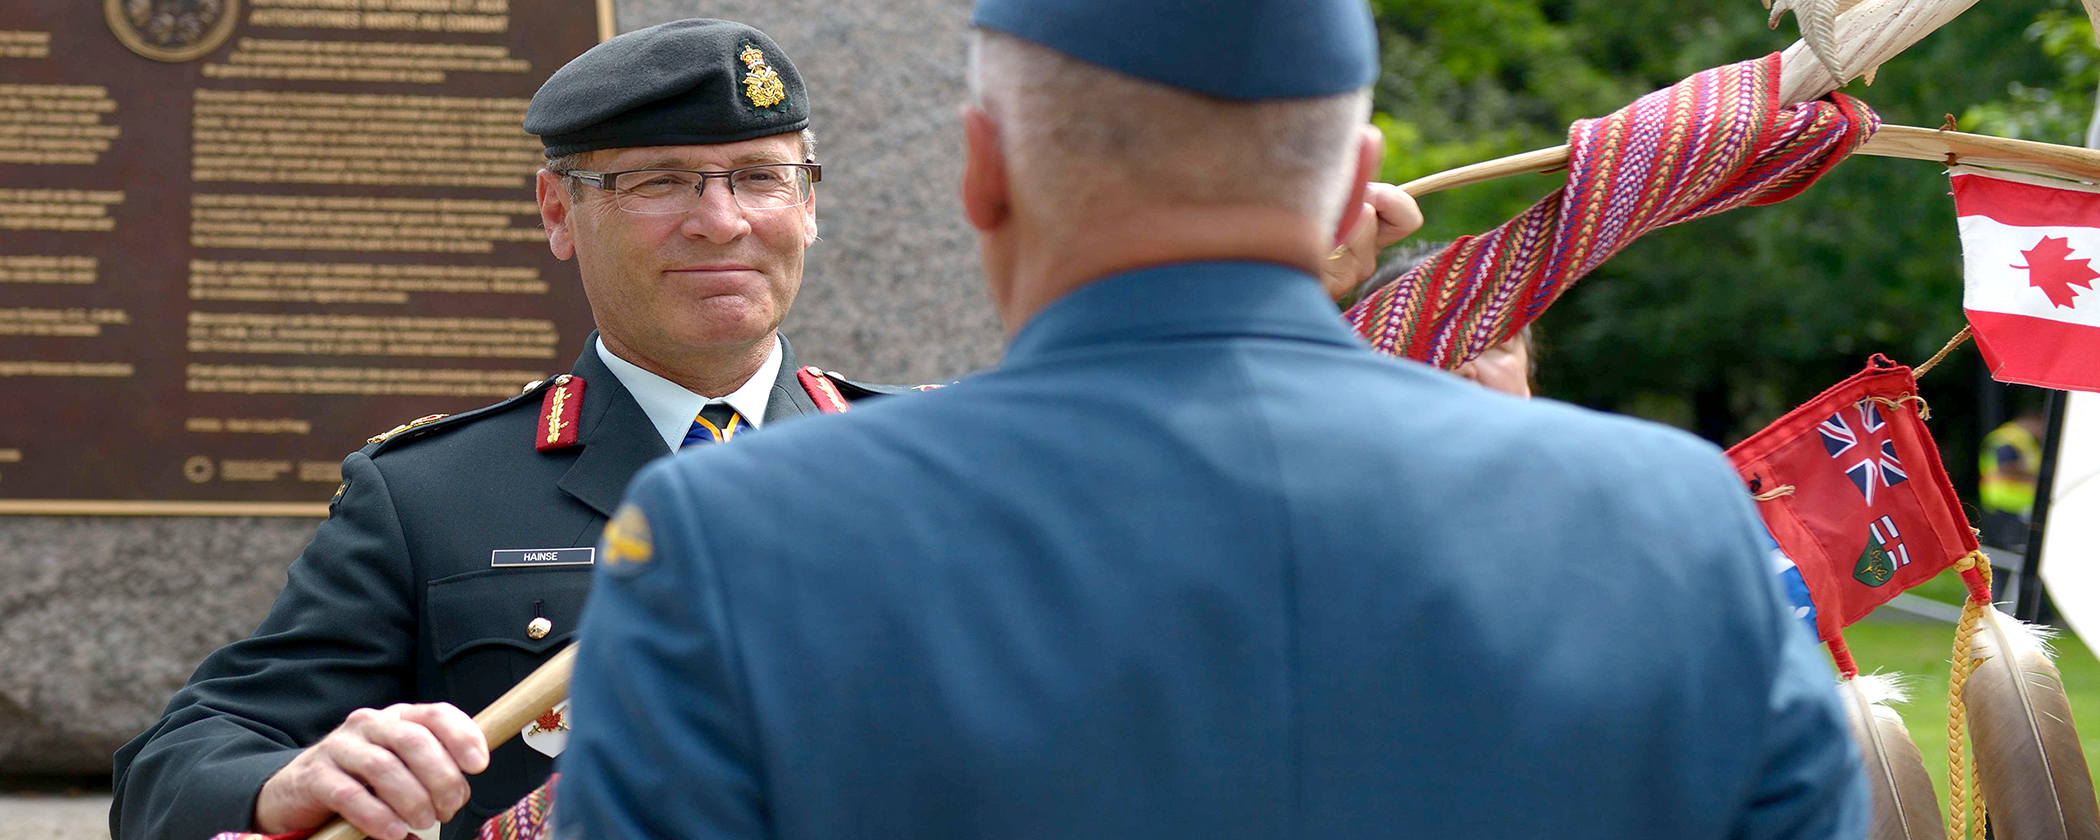 Two men in military uniform hold a large ceremonial First Nations staff